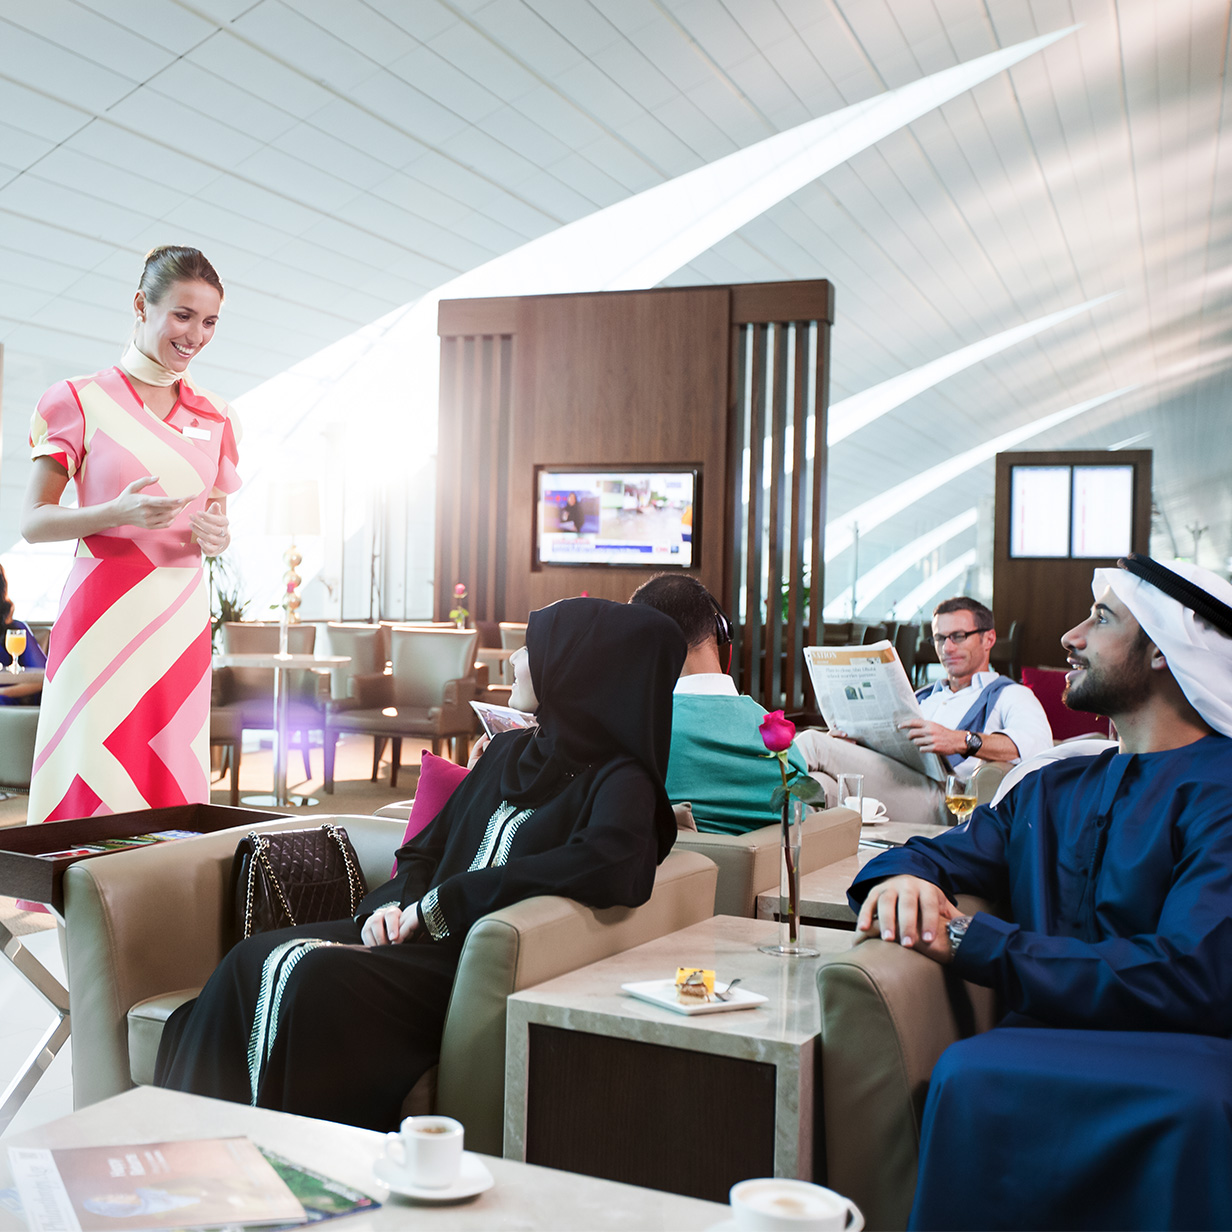 Dubai International Airport Lounges